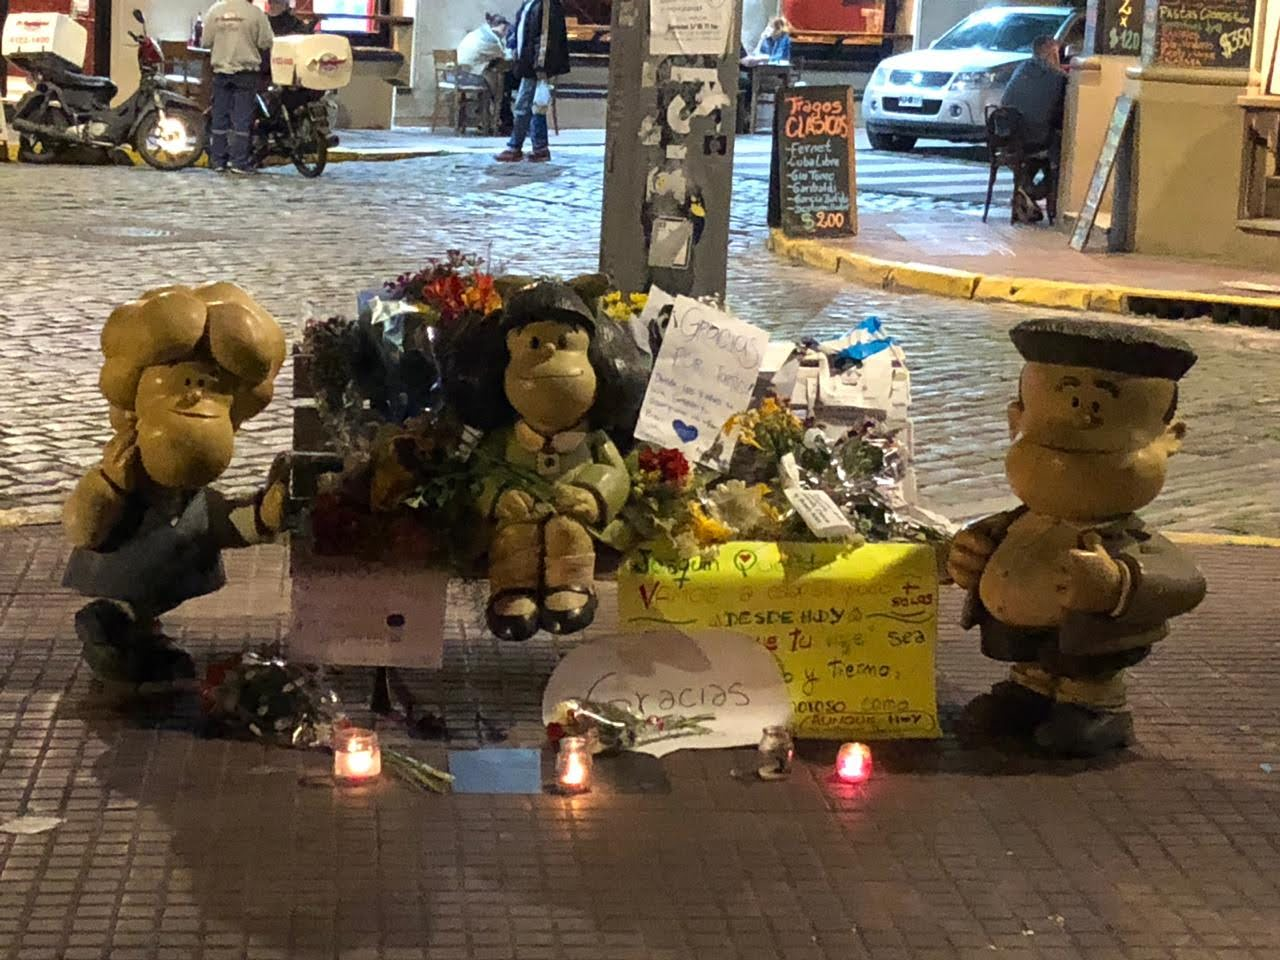 Photo of Mafalda statue surrounded by flowers and candles